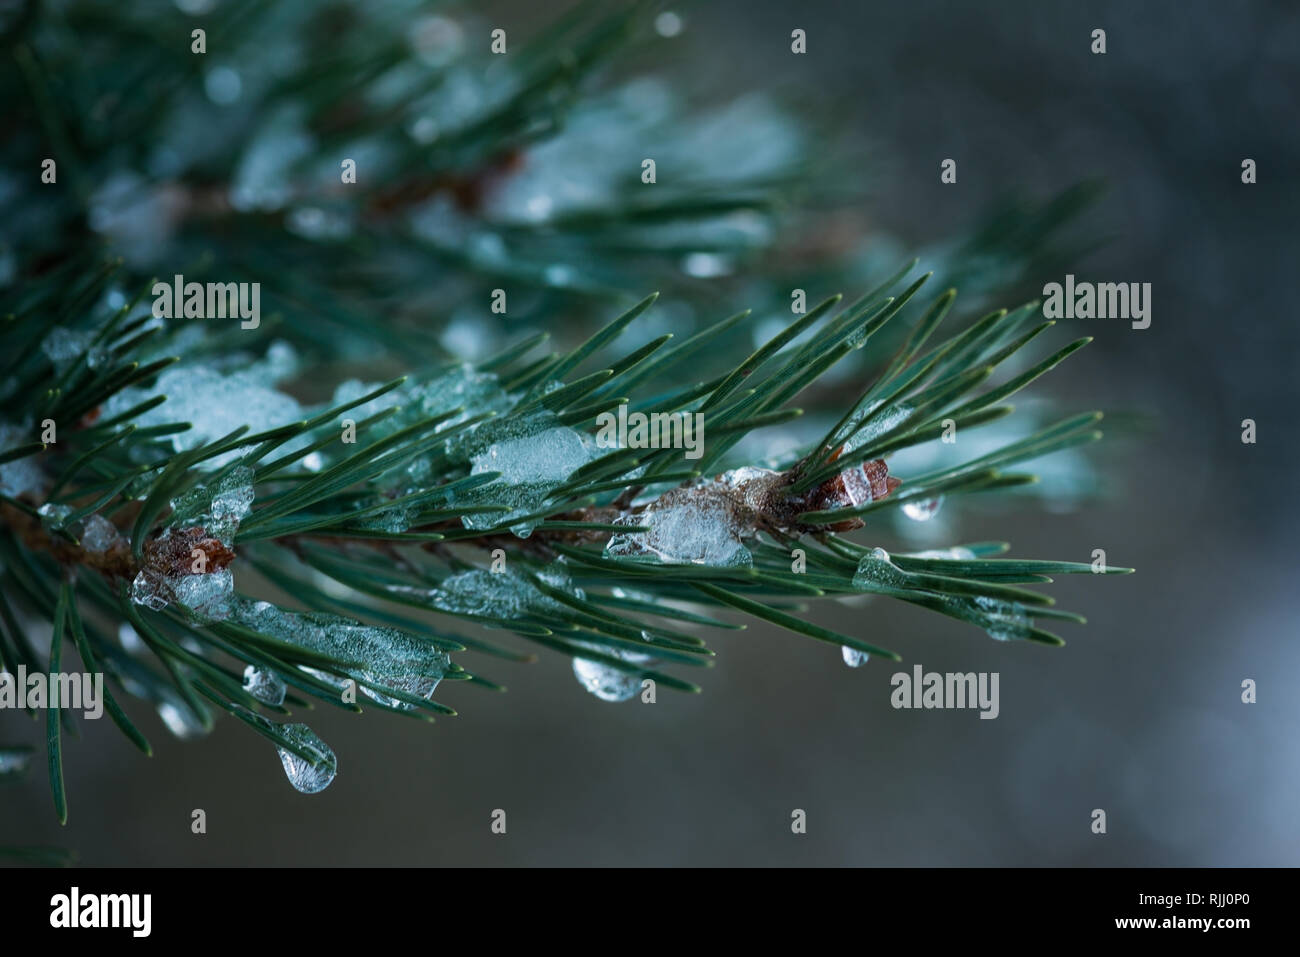 Icy fir tree branch - Stock Image